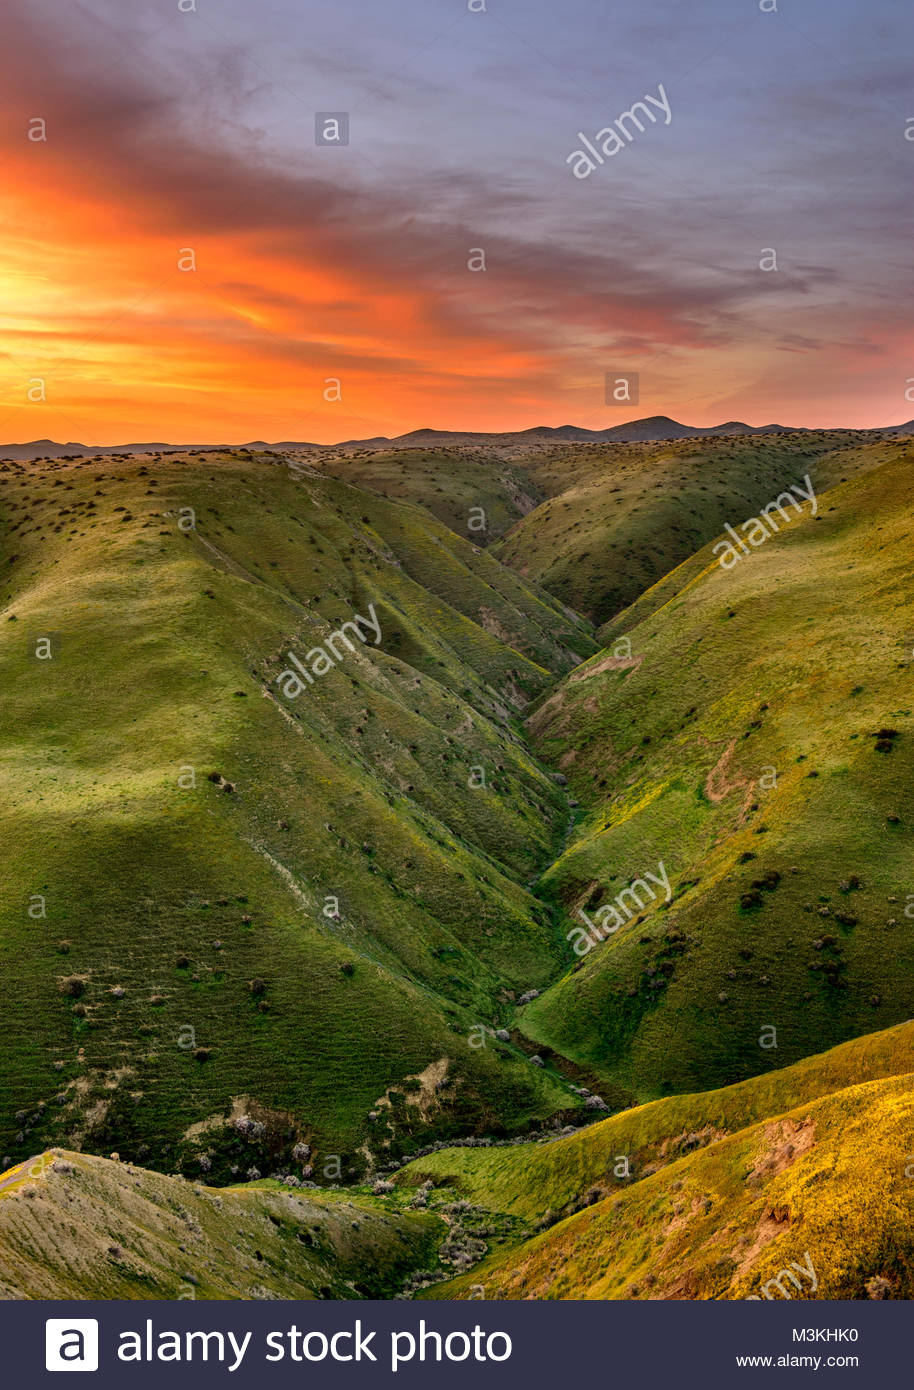 Panoche Hills Wilderness Study Area before Dawn, Fresno County, California - Stock Image